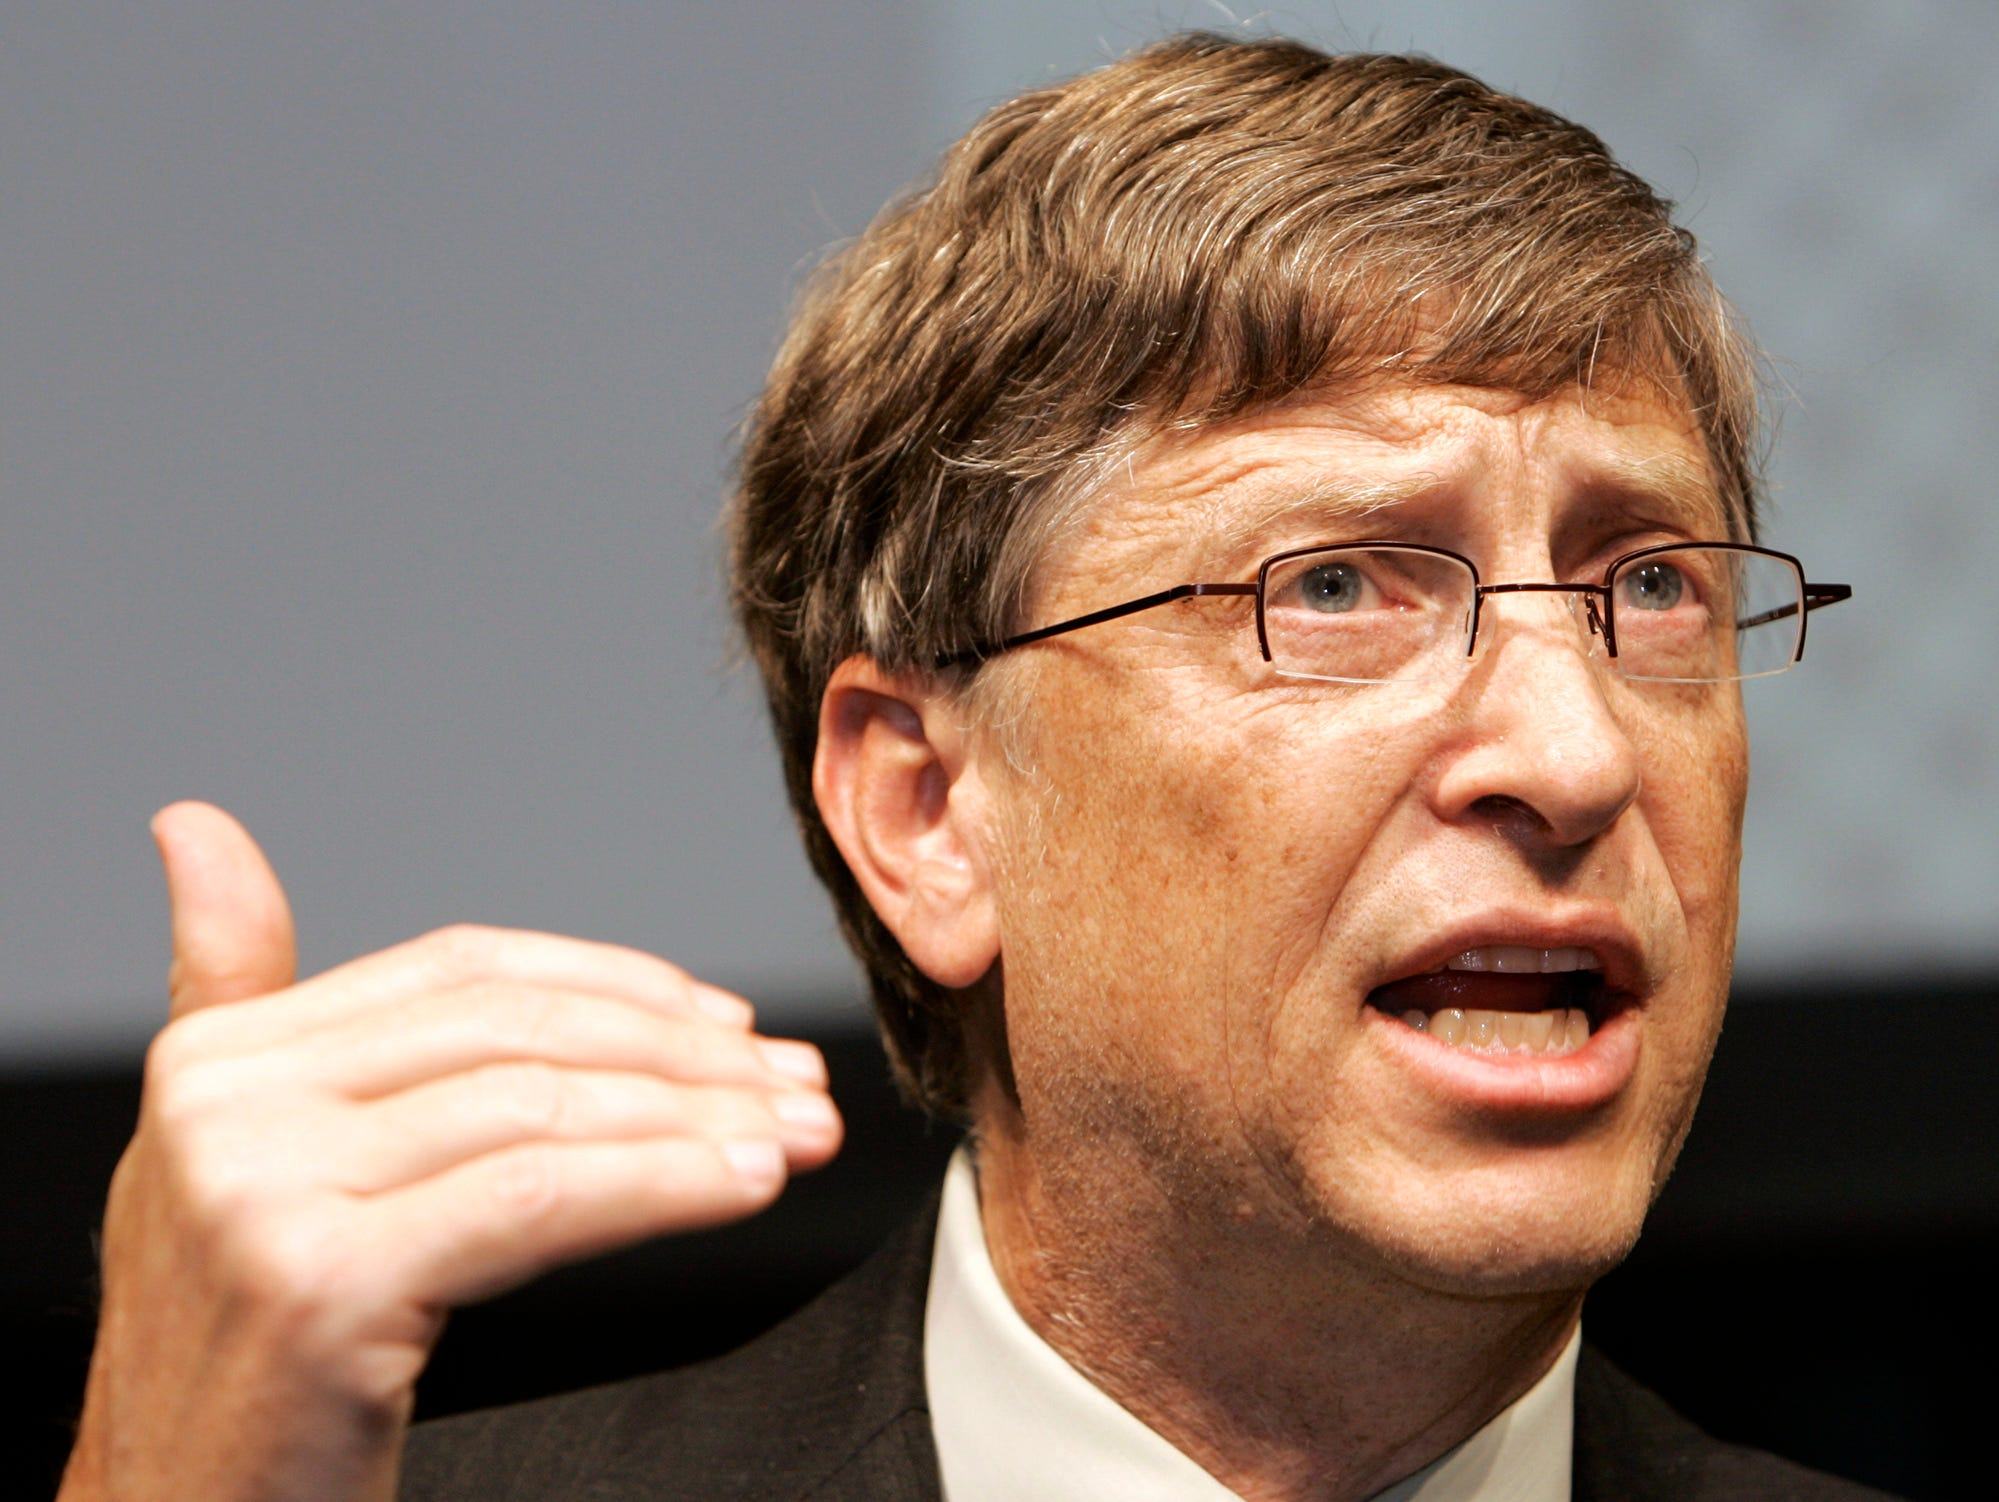 Microsoft Chairman Bill Gates speaks during a press conference in Tokyo, Wednesday, May 7, 2008. Gates said Wednesday the company isn't pursuing other deals following the withdrawal of its US$47.5 billion (euro30.7 billion) takeover bid for Yahoo.